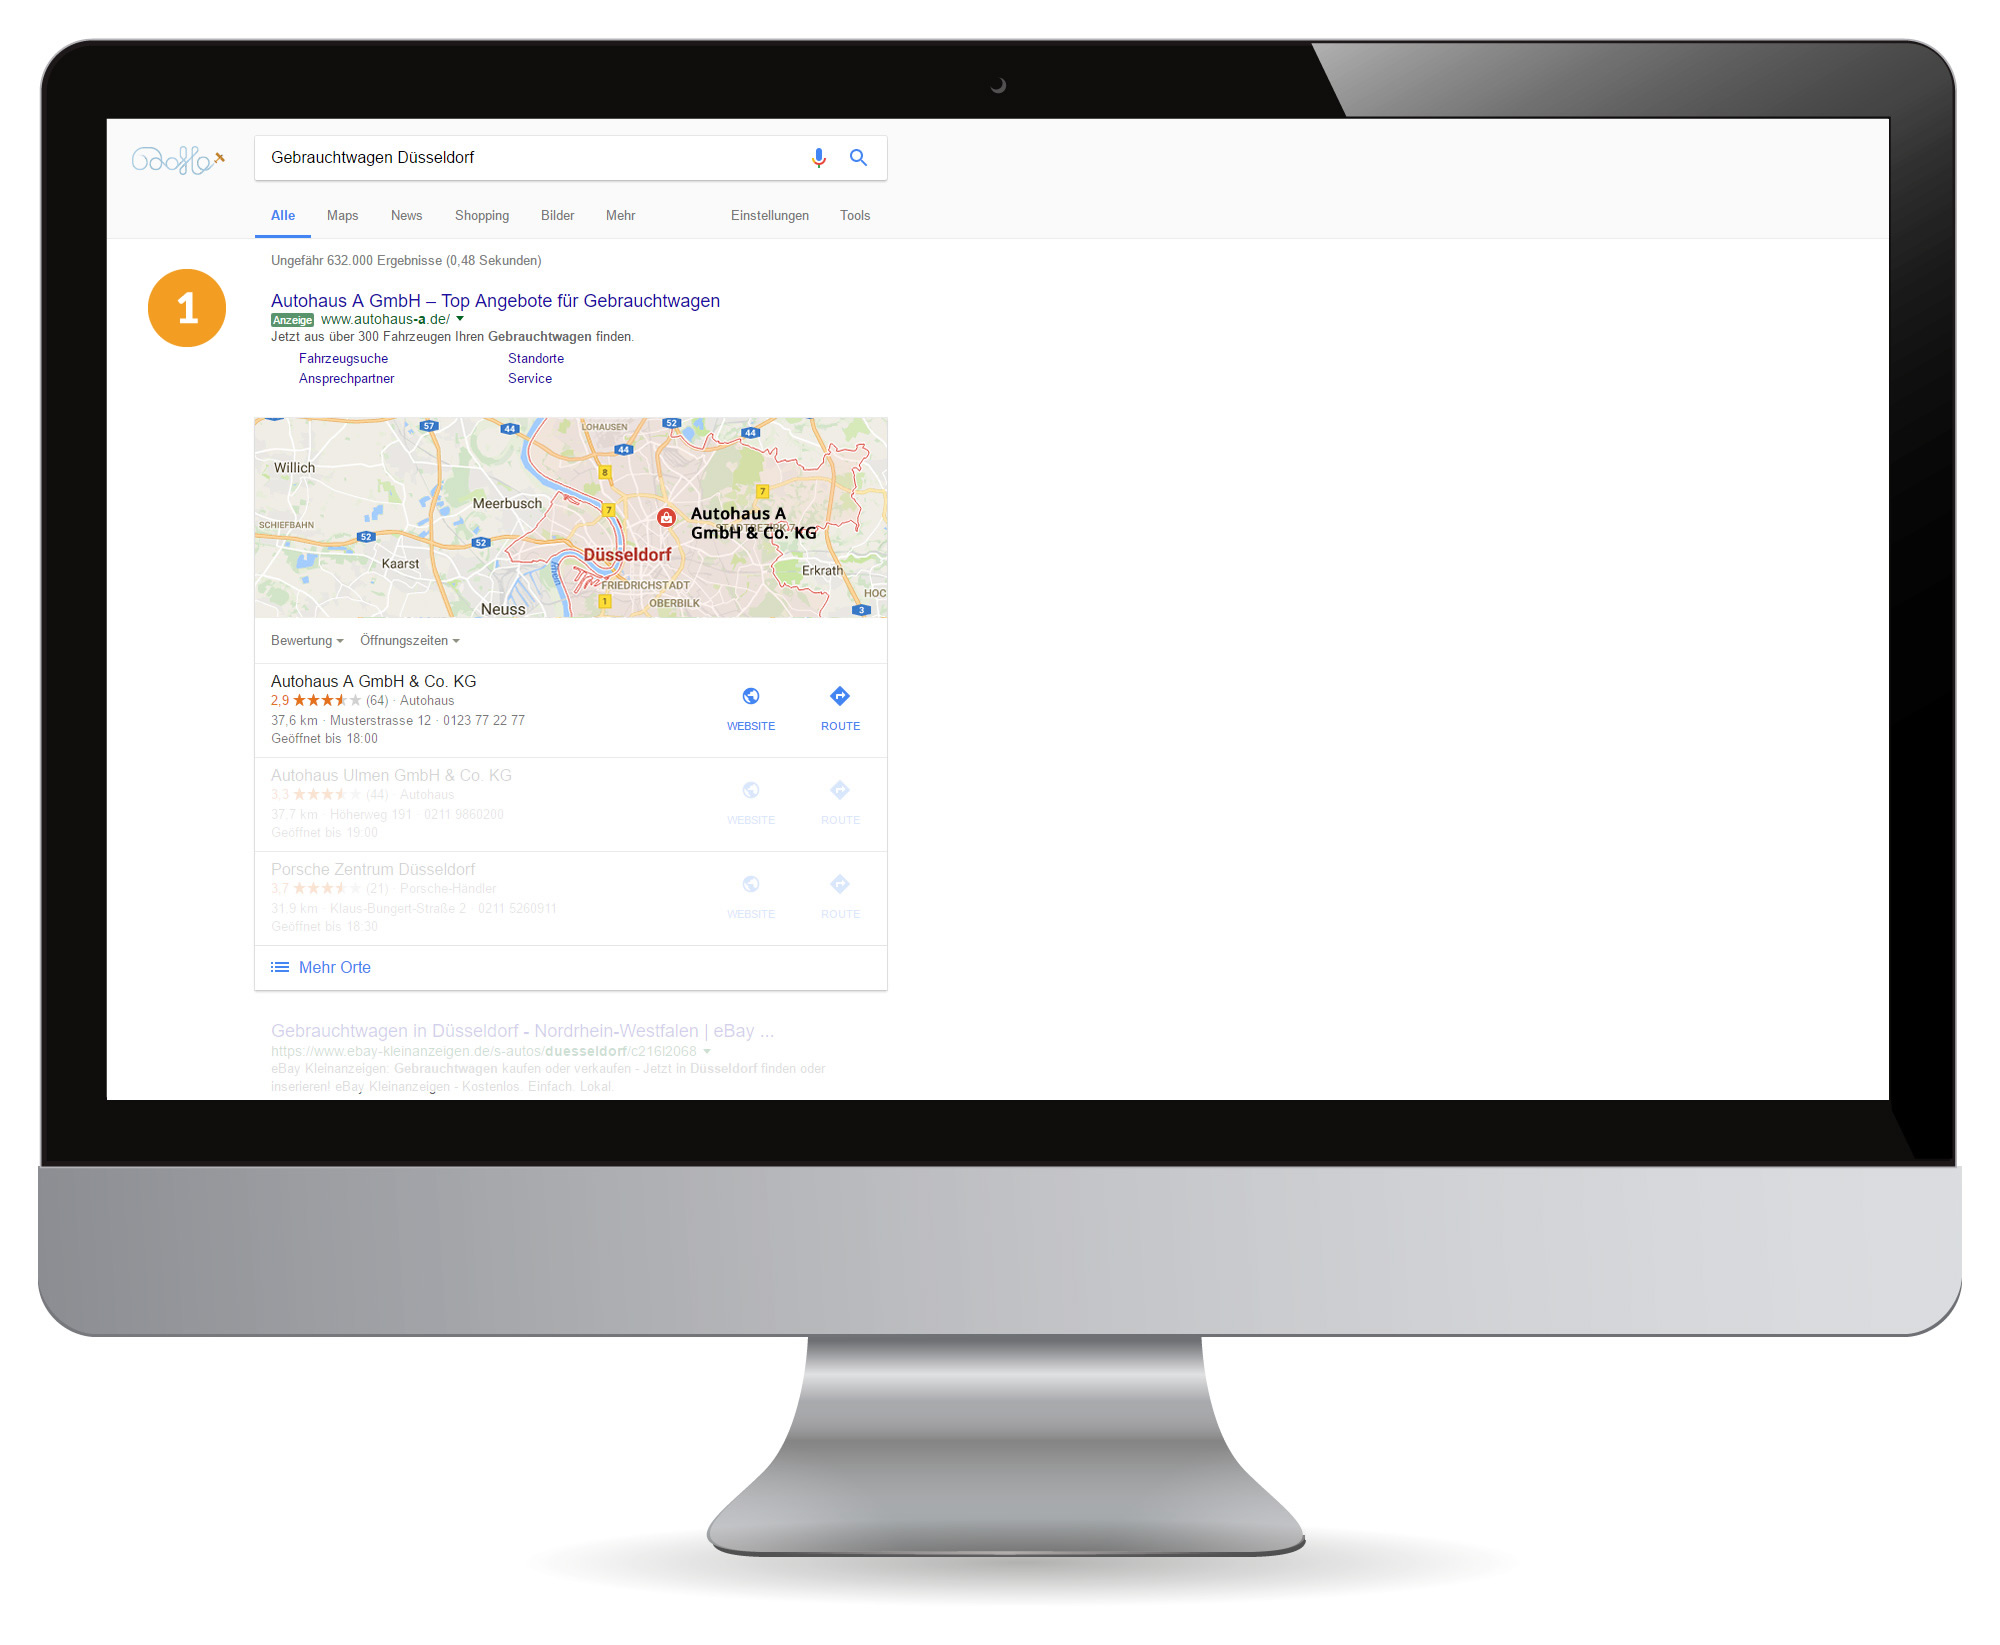 Autohaus Online-Marketing mit Google AdWords